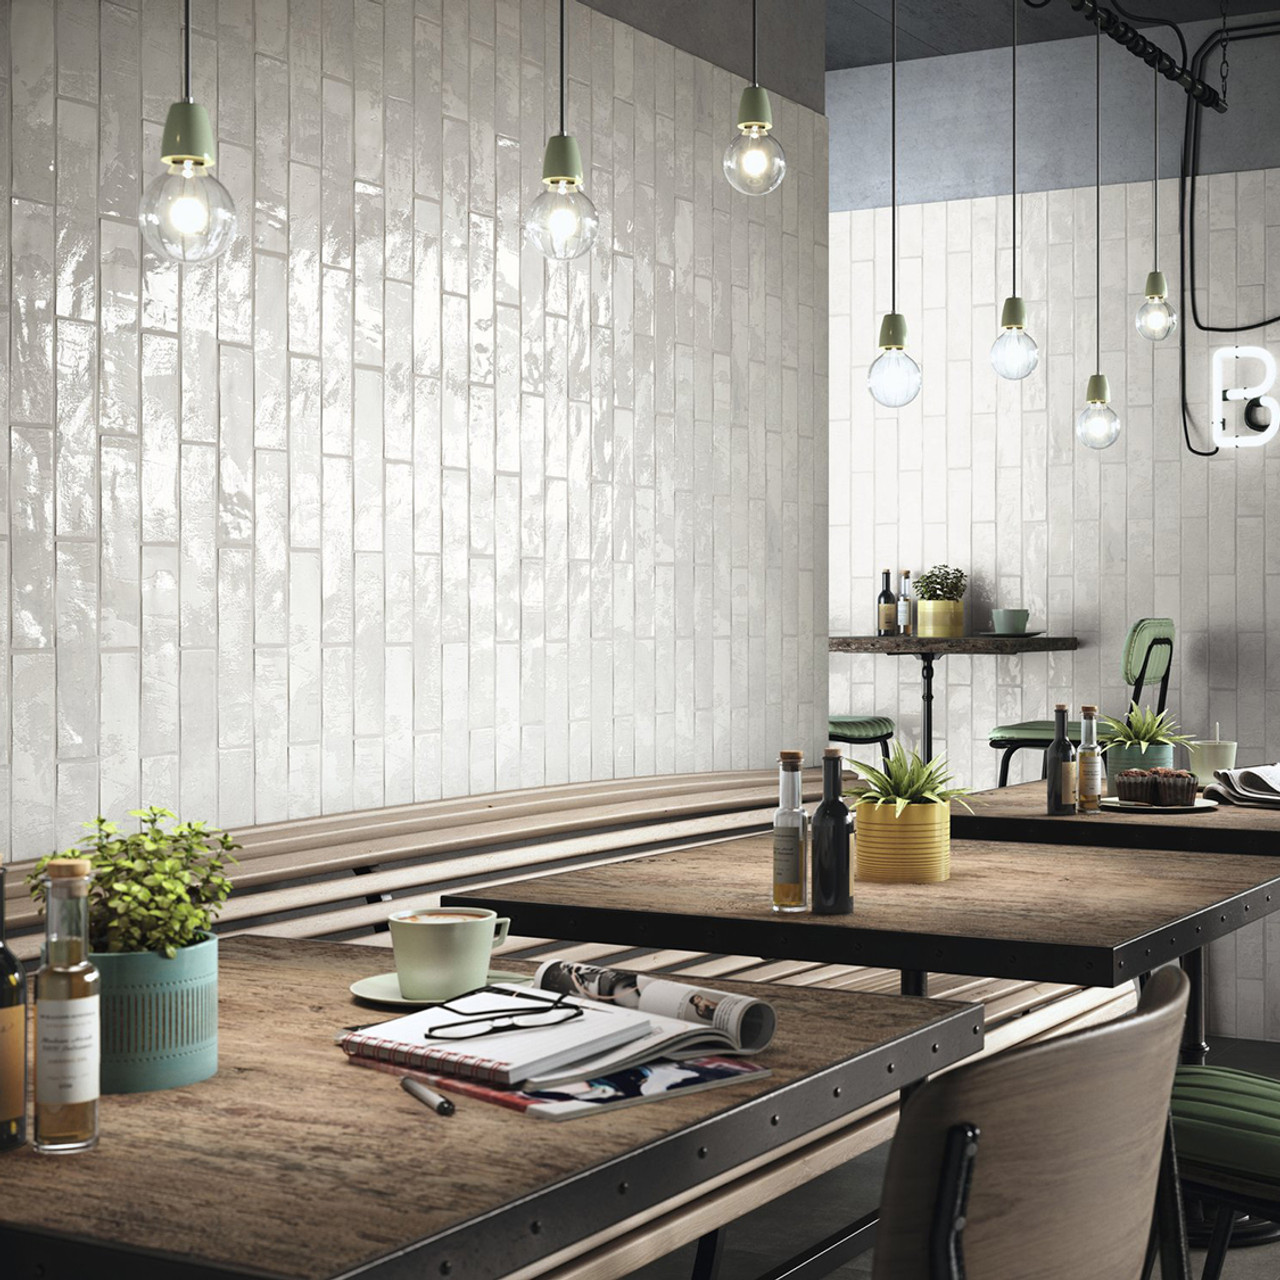 Snap Spanish Ceramic Wall Tiles In Liverpool